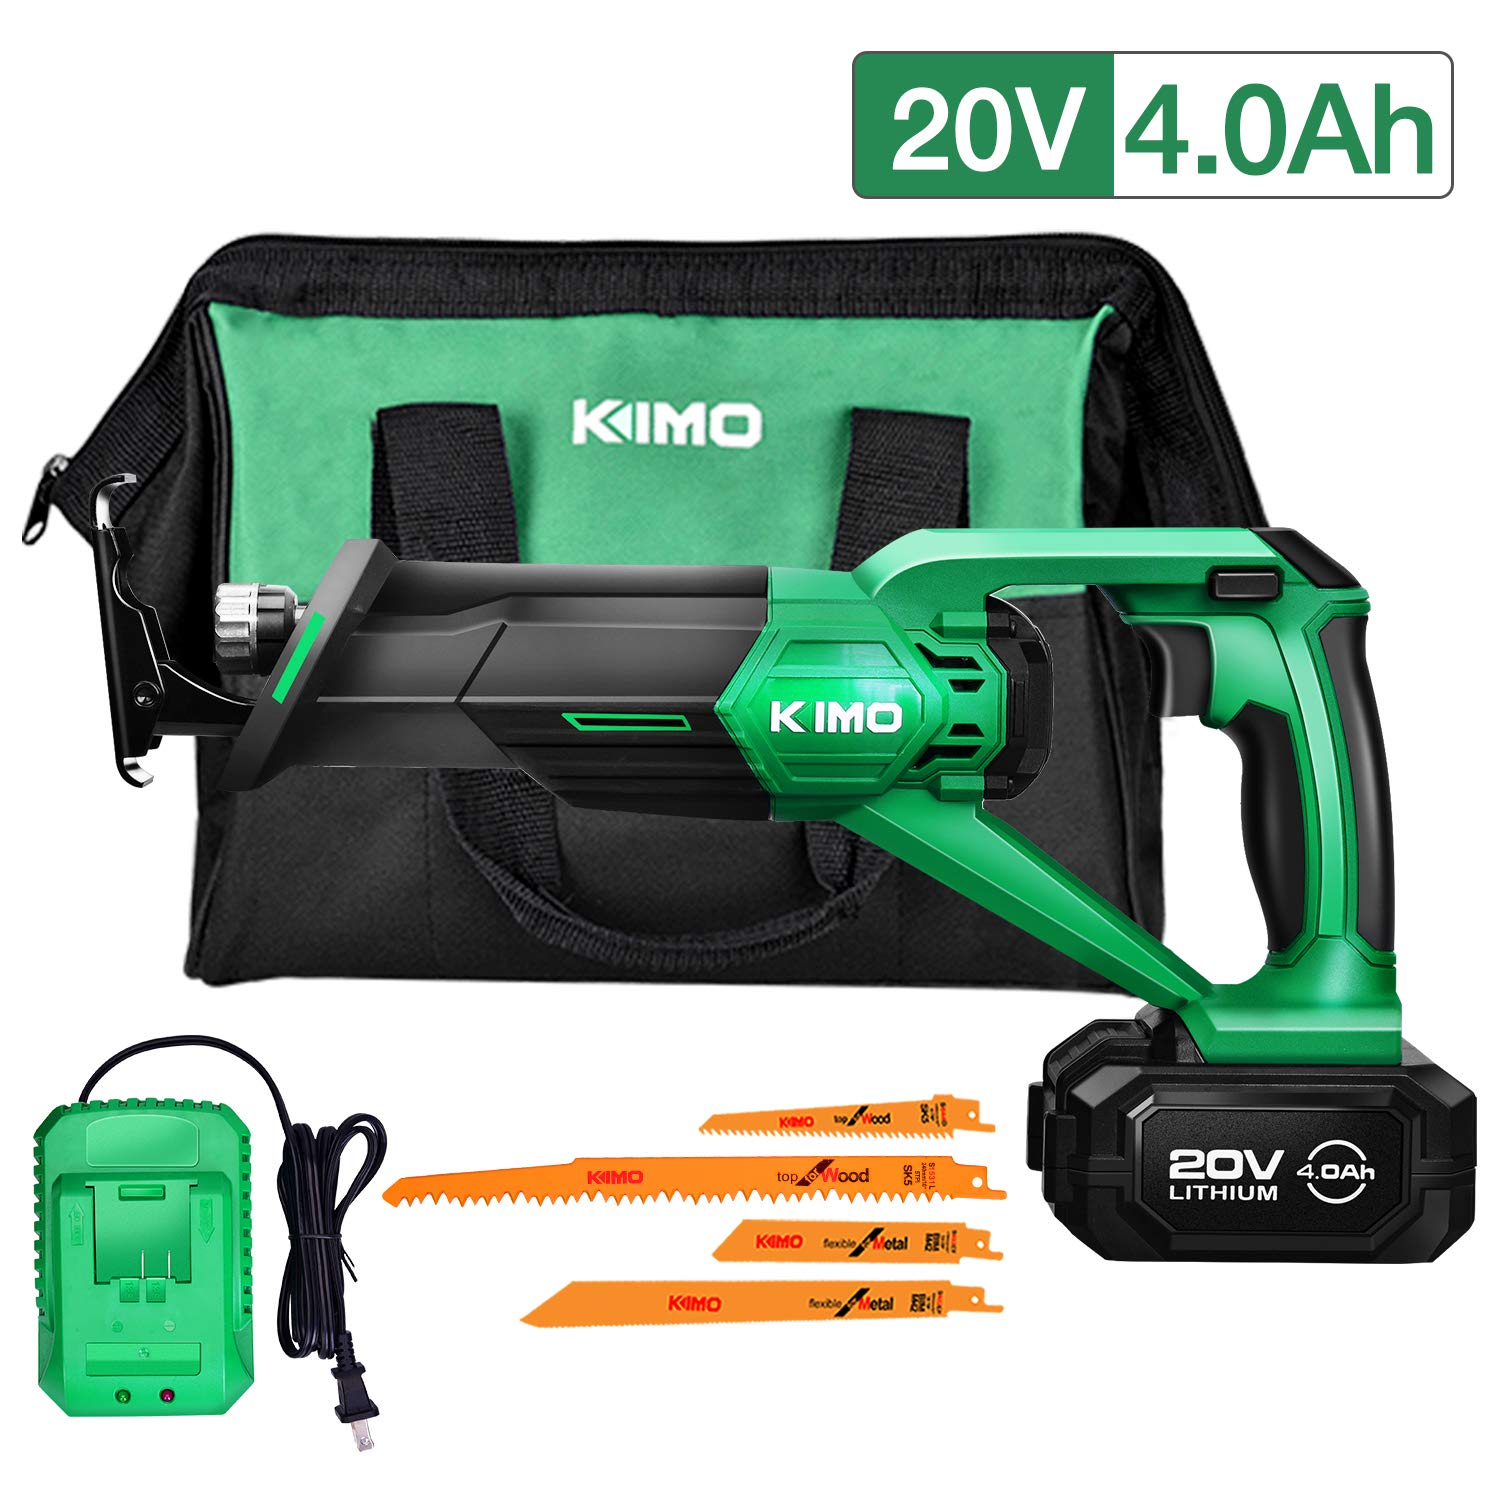 """Cordless Reciprocating Saw – 20V 4.0Ah Compact Saw w/Li-Ion Battery & Charger, Variable Speed 0-3000 SPM, 3/4"""" Stroke Length, 4 Saw Blades, Ideal for Metal Wood Tree Branch Trimming Cutting Pruning"""